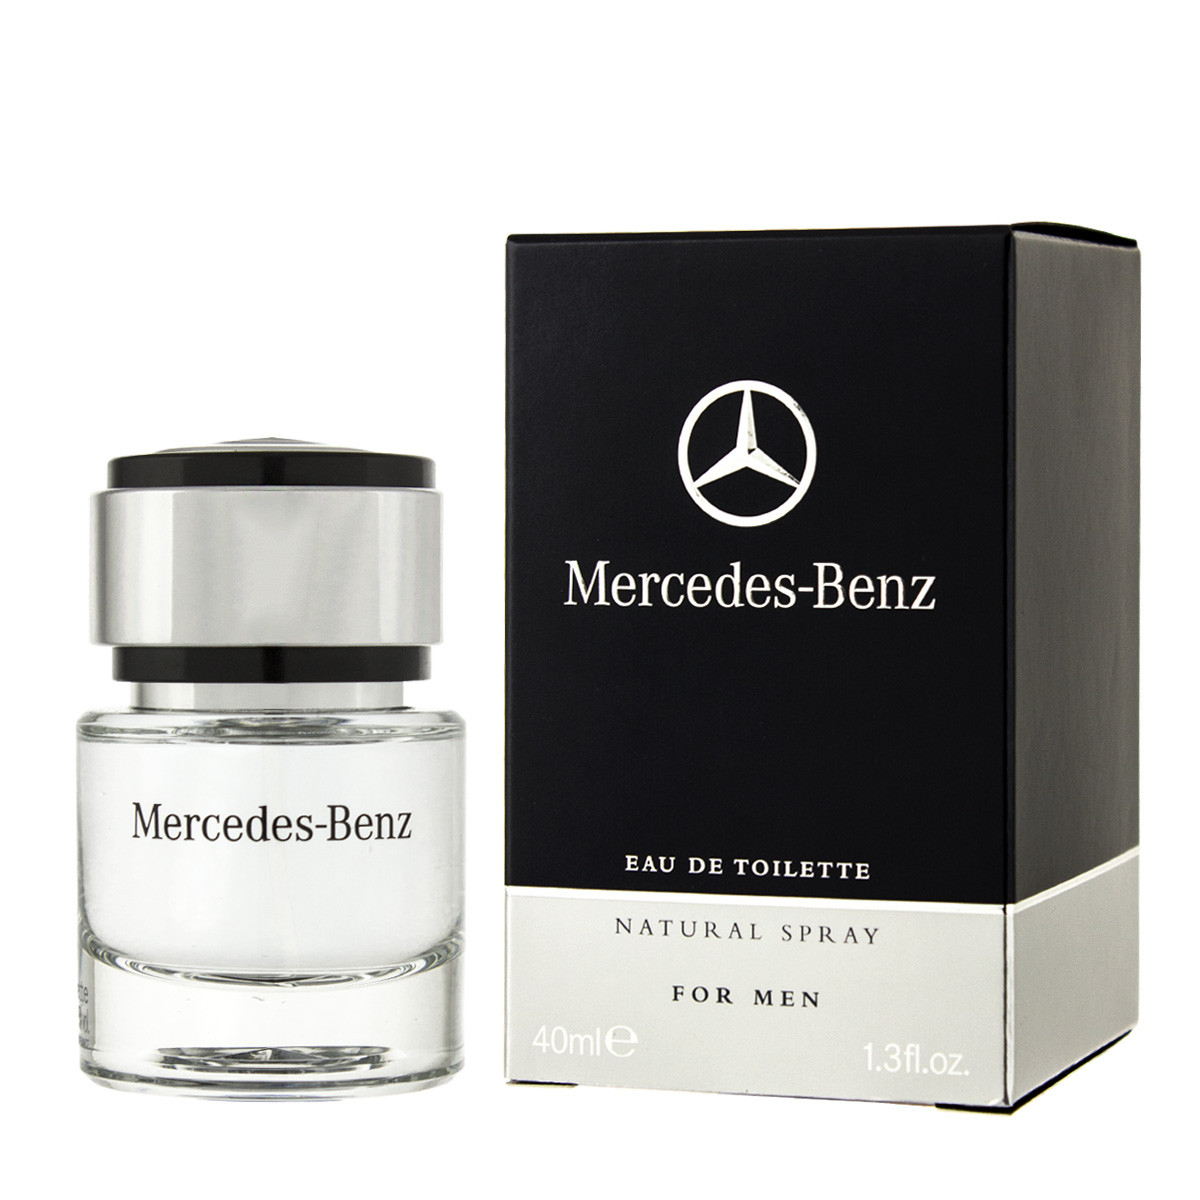 mercedes benz mercedes benz eau de toilette 40 ml man. Black Bedroom Furniture Sets. Home Design Ideas